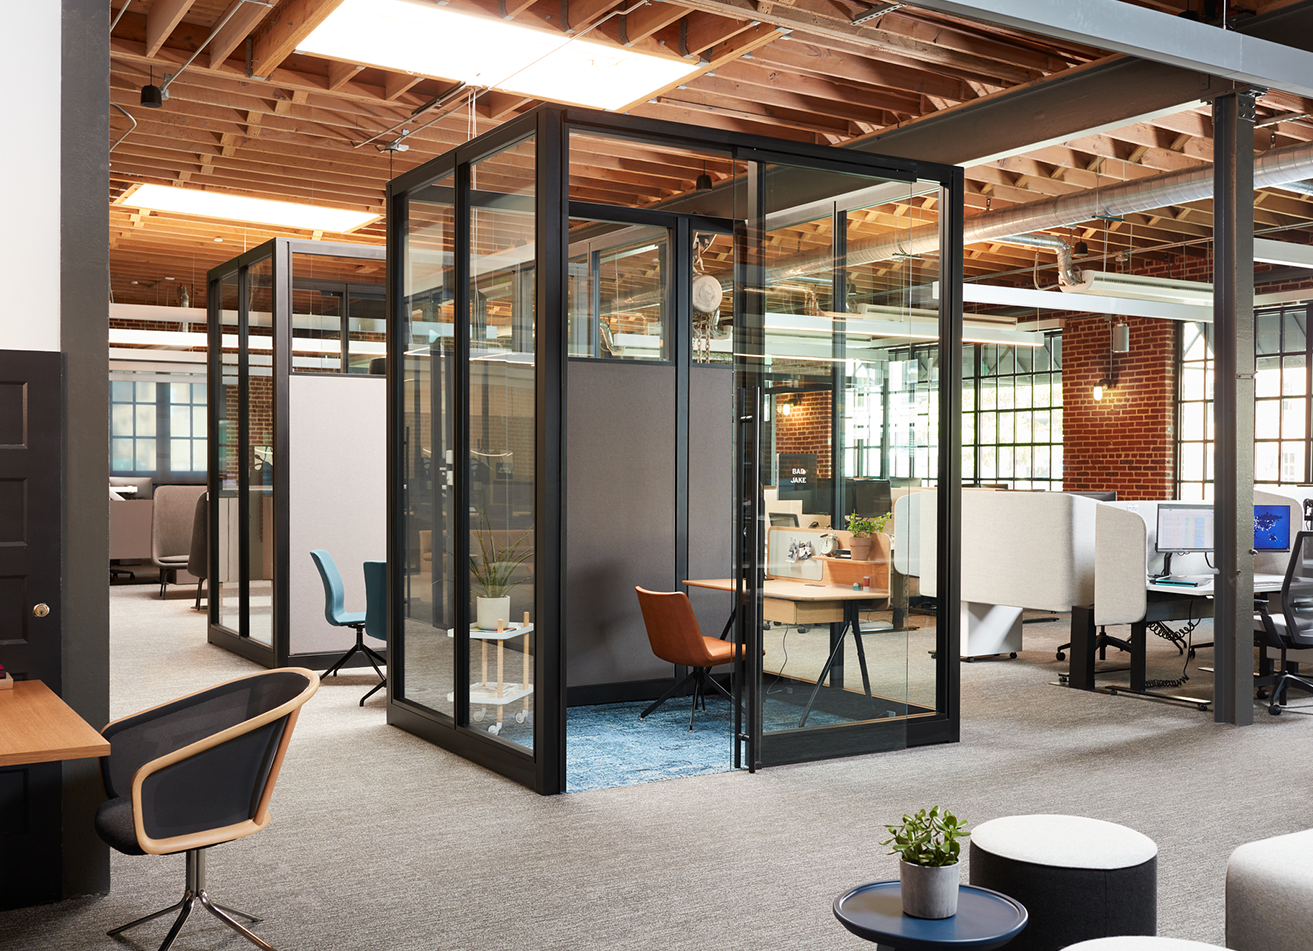 IE Showroom with glassed-in cubicles and workspaces